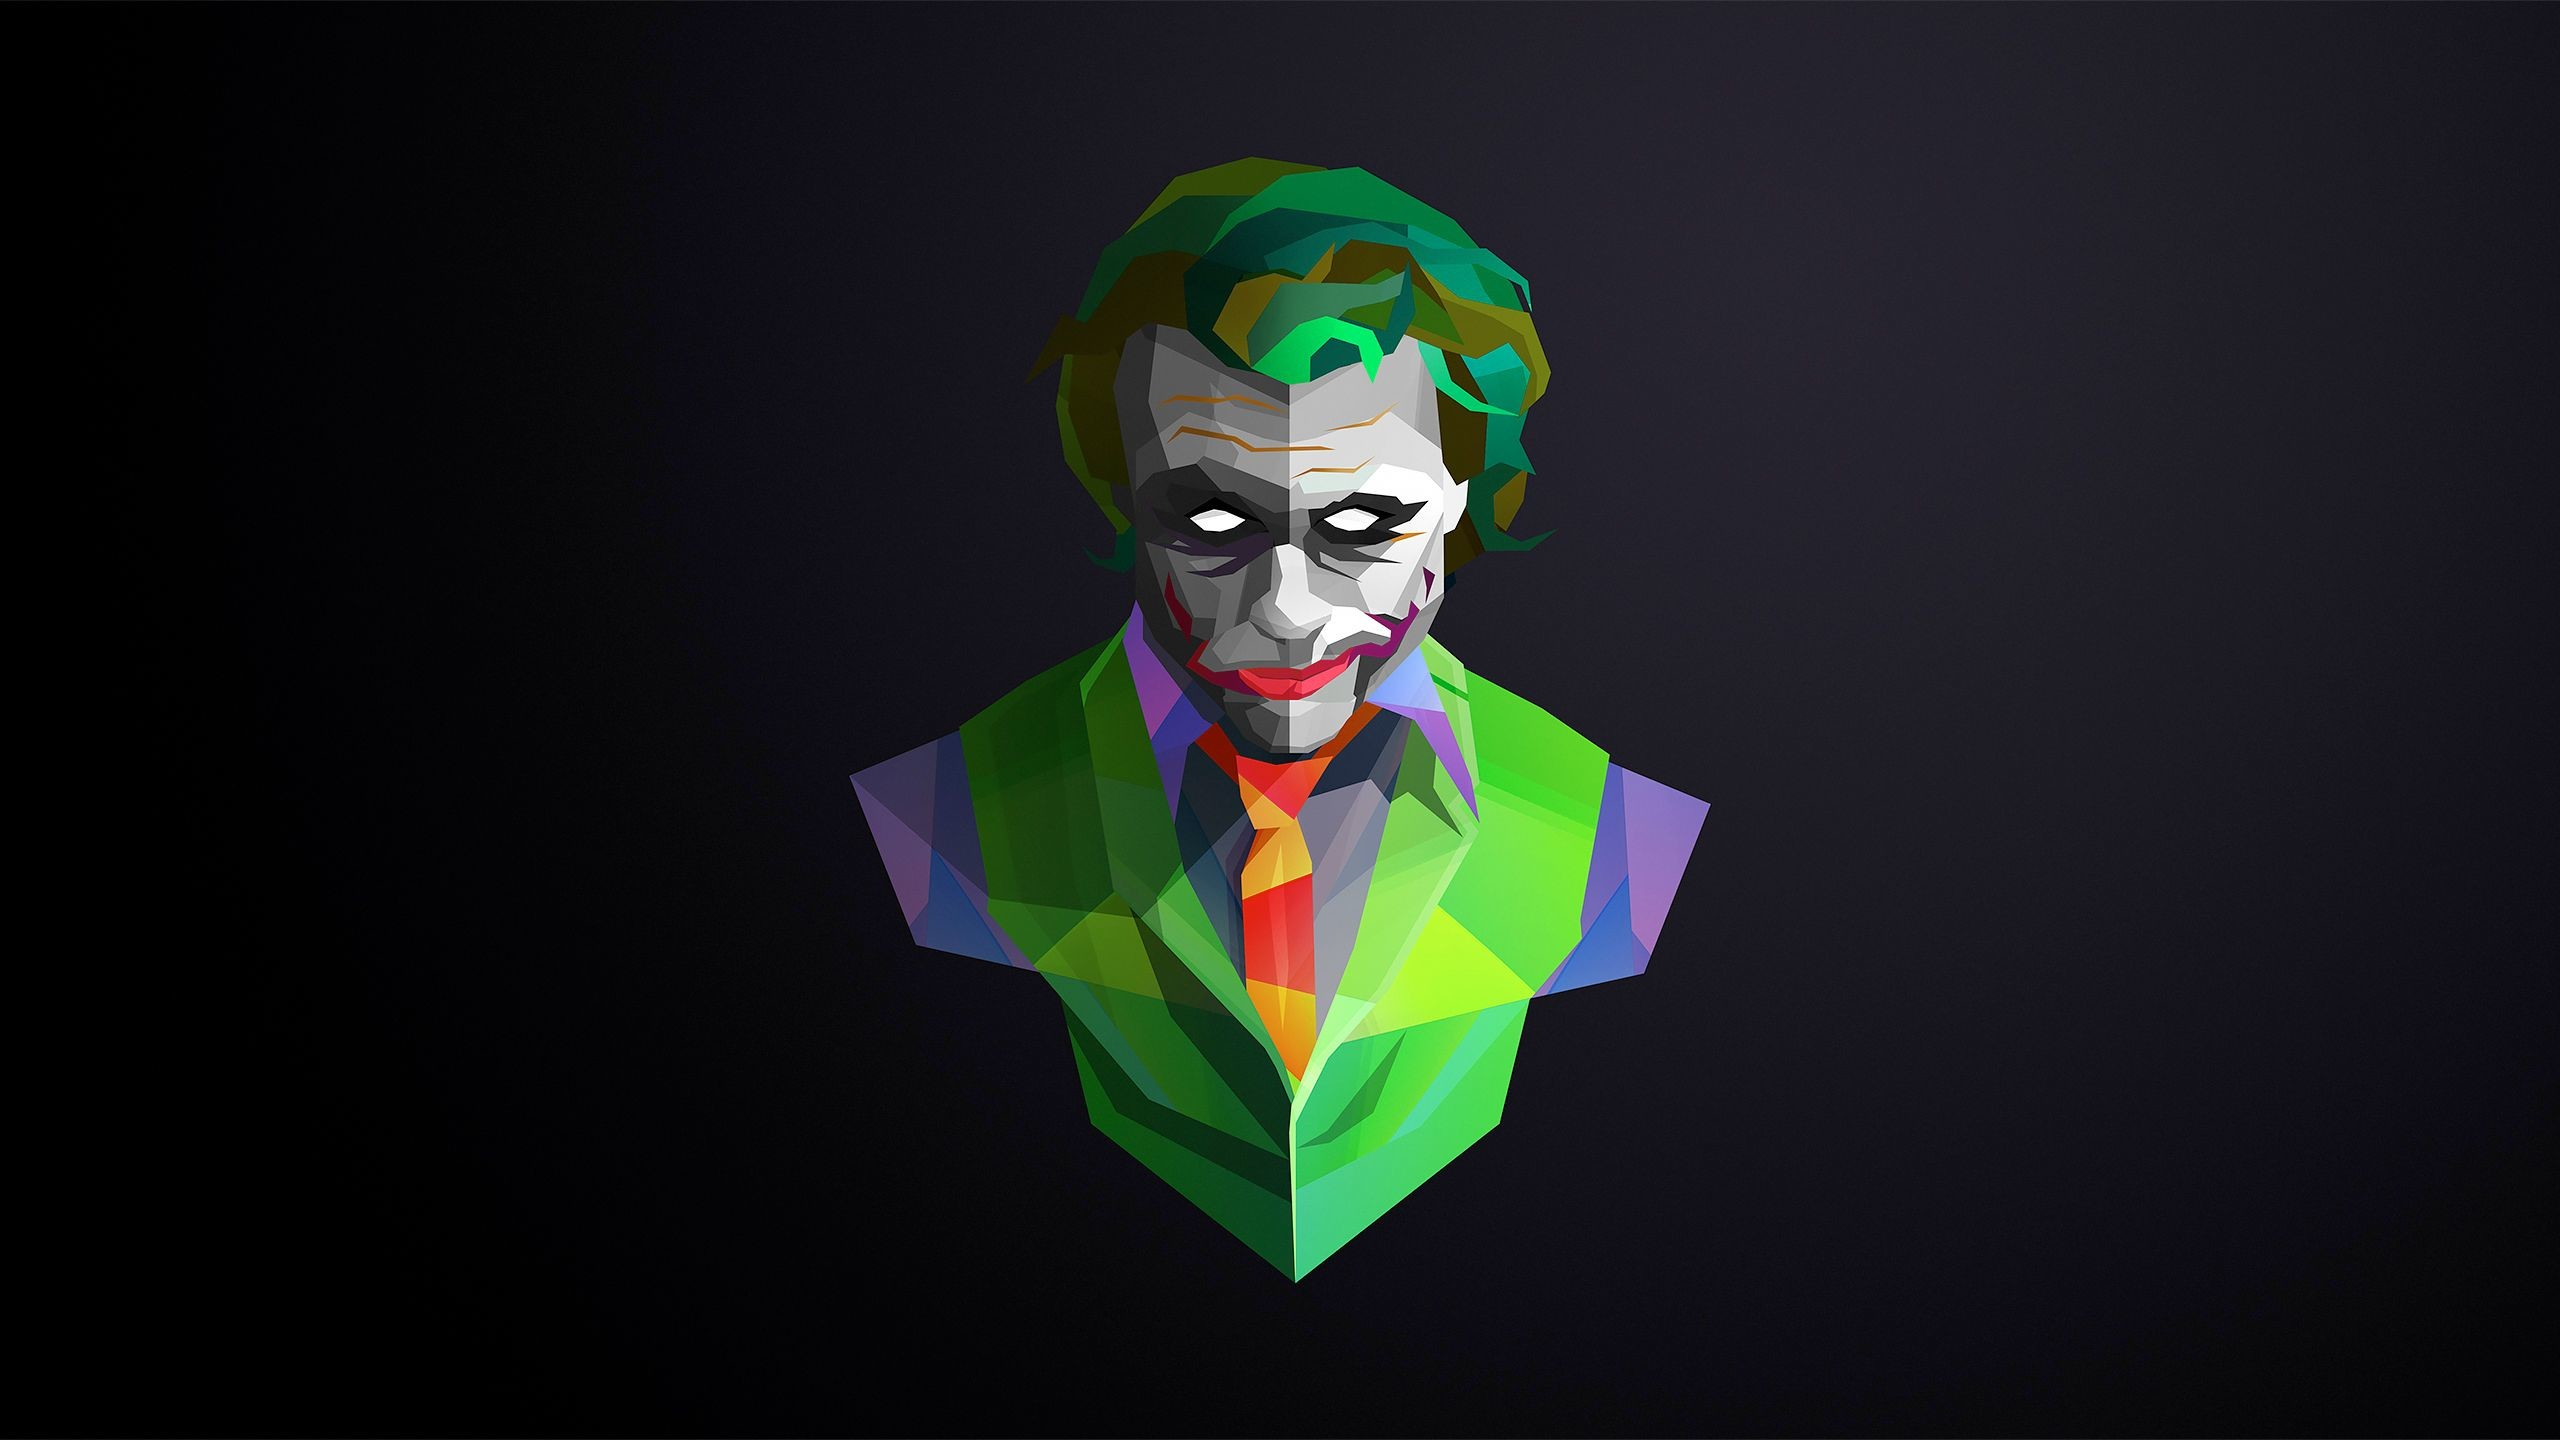 Res: 2560x1440, Joker-The Undefined Villain!!SuperVillain Wallpaper!!Full HD Created with  Sketch.